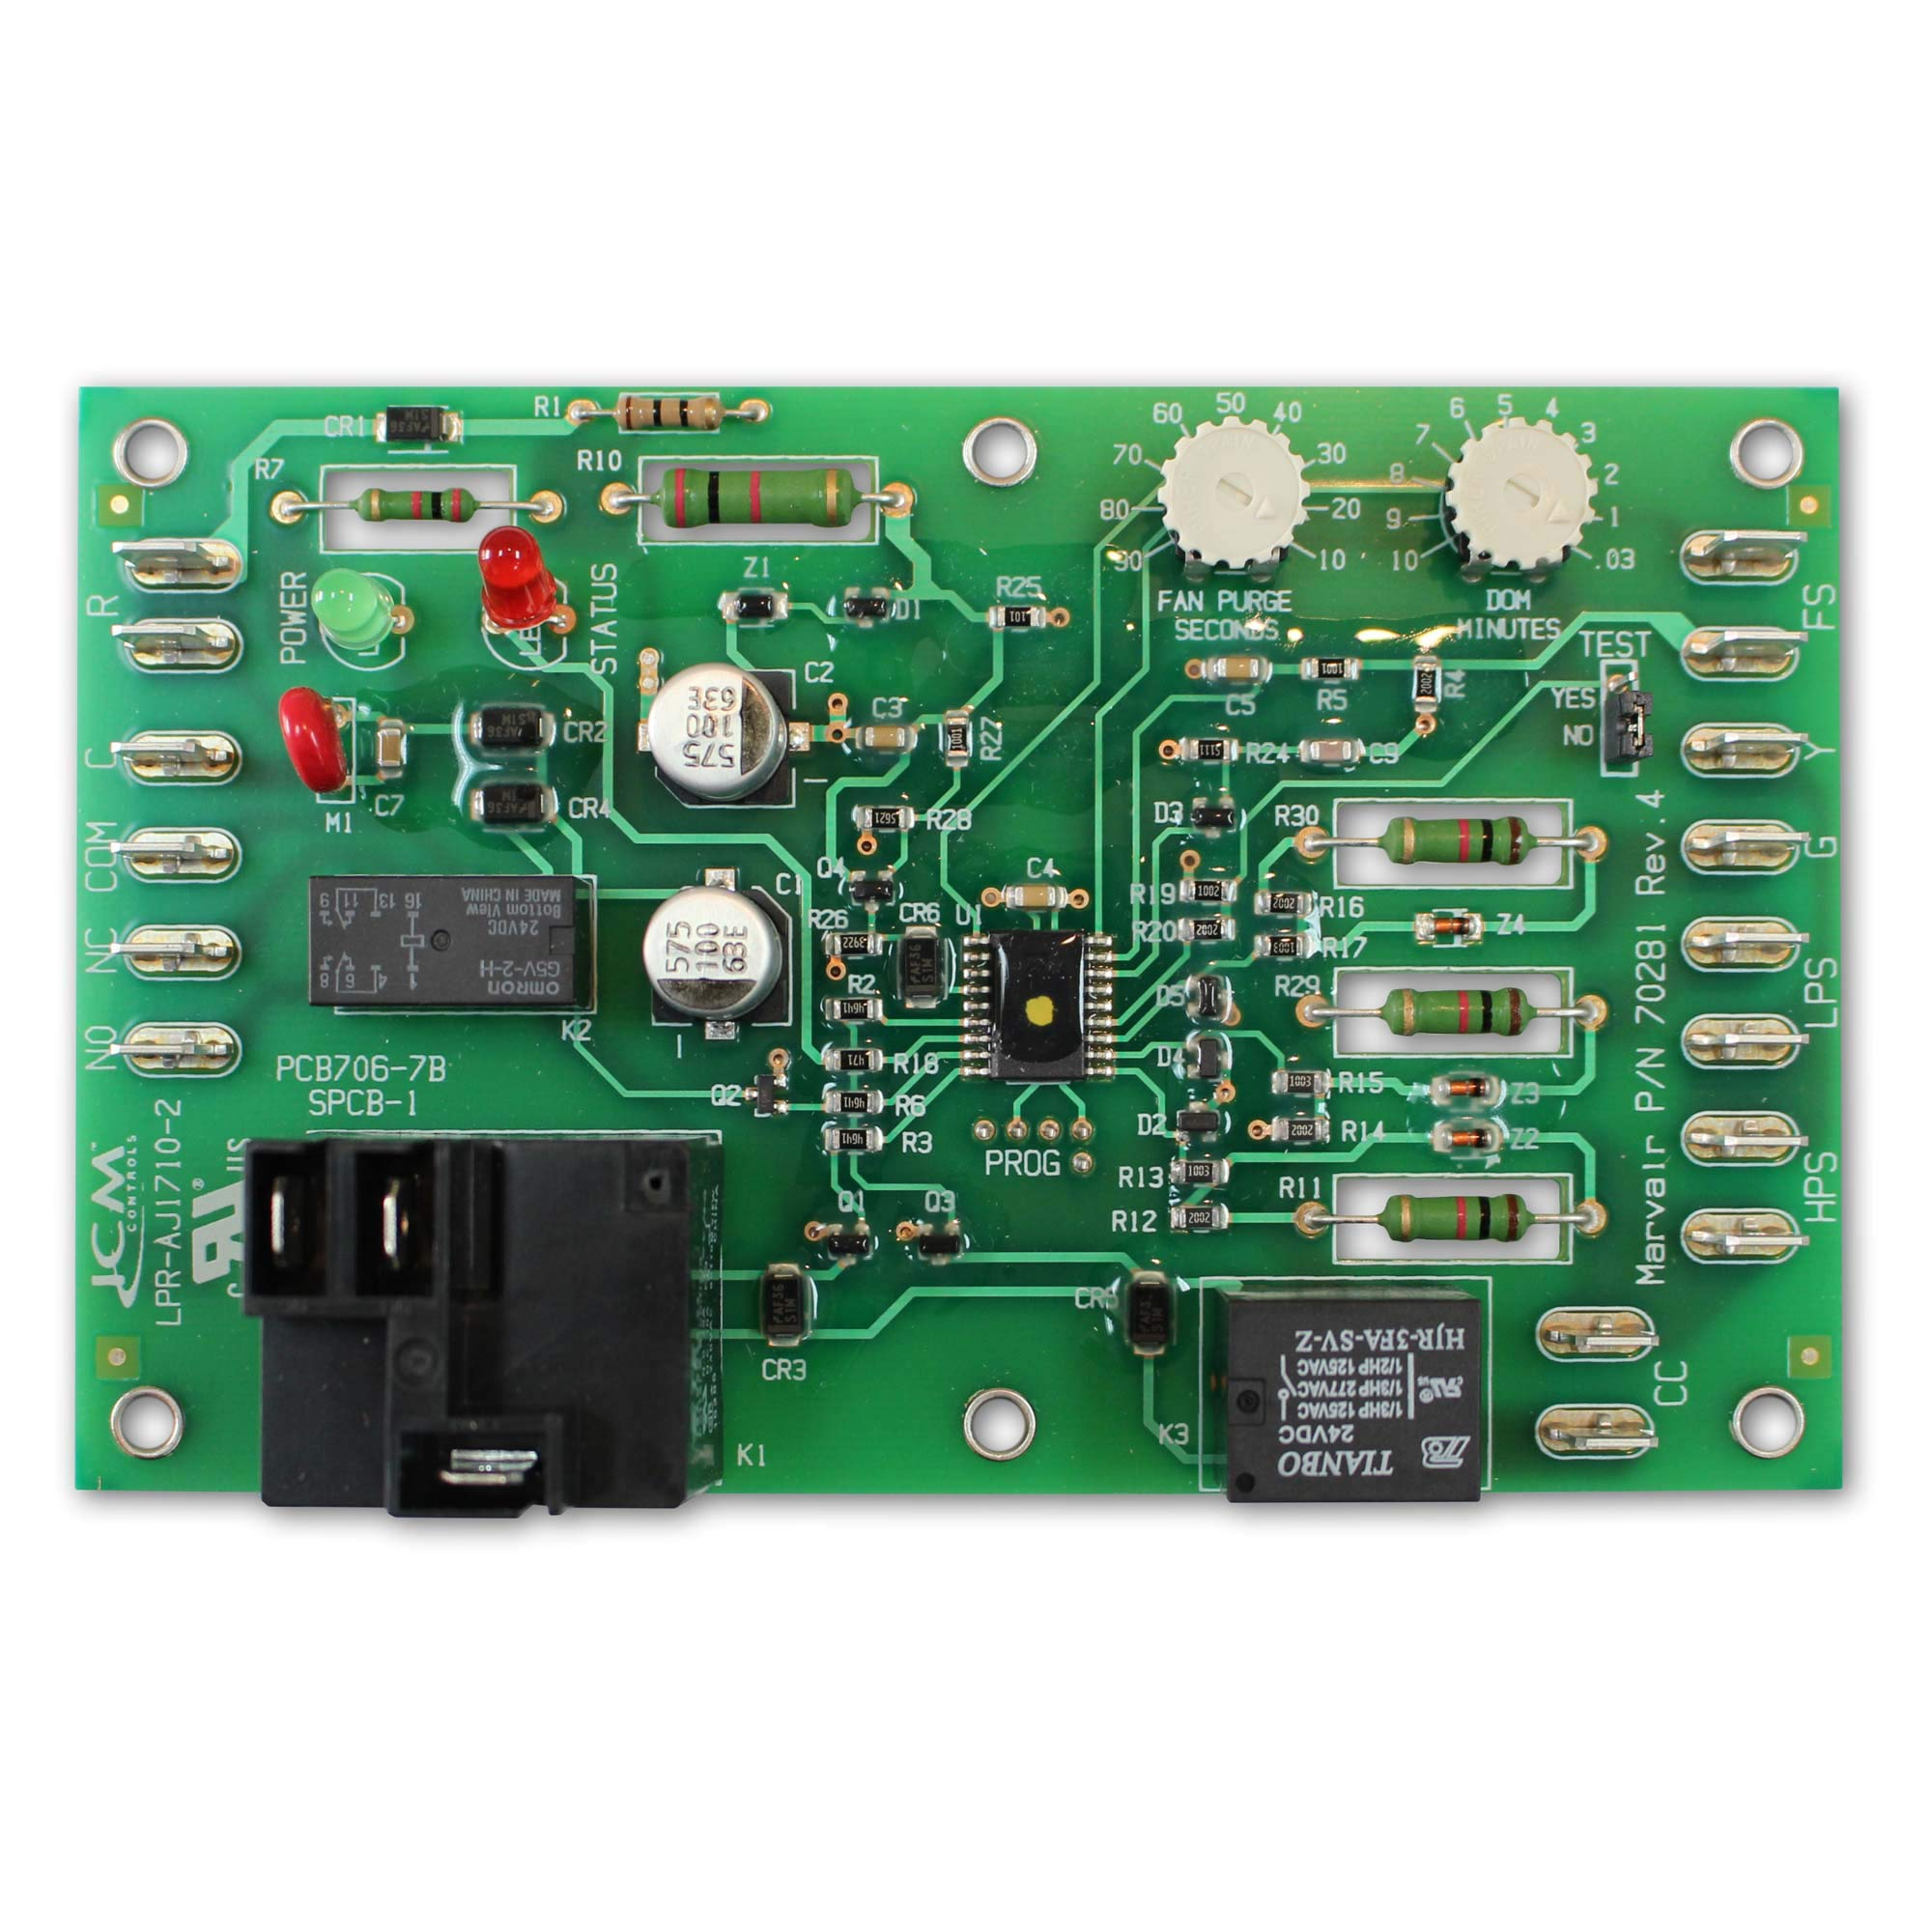 Marvair 70281 Electronic Control Board for ComPac AC